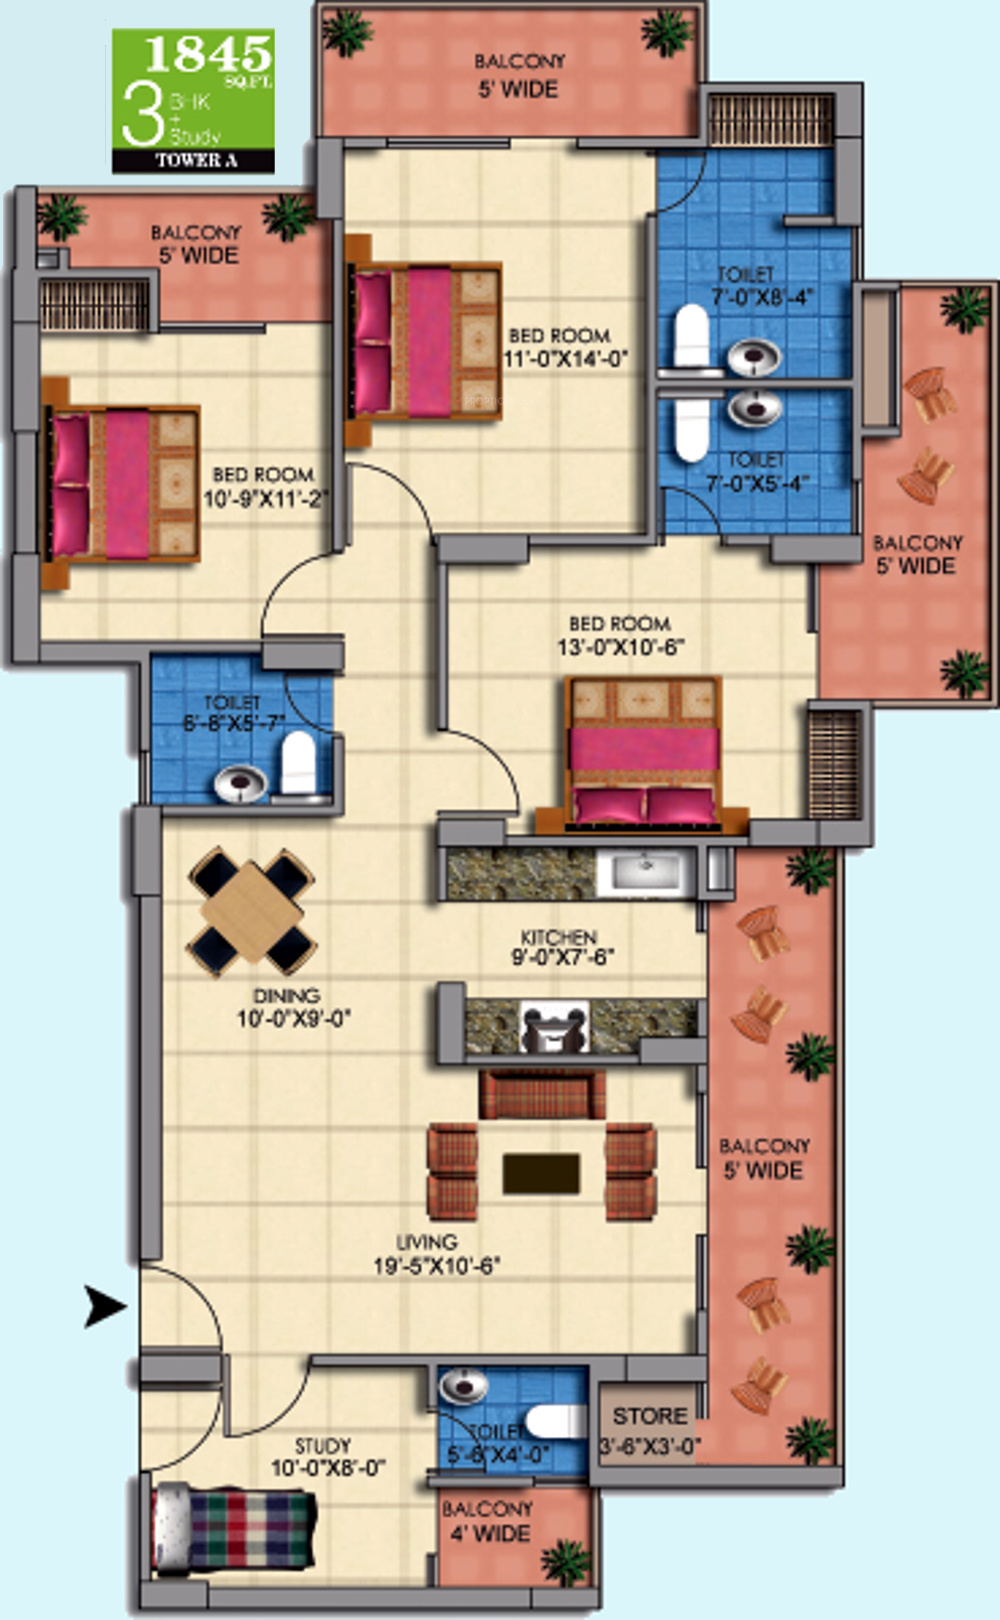 mascot manorath by mascot homes in sector 16 noida